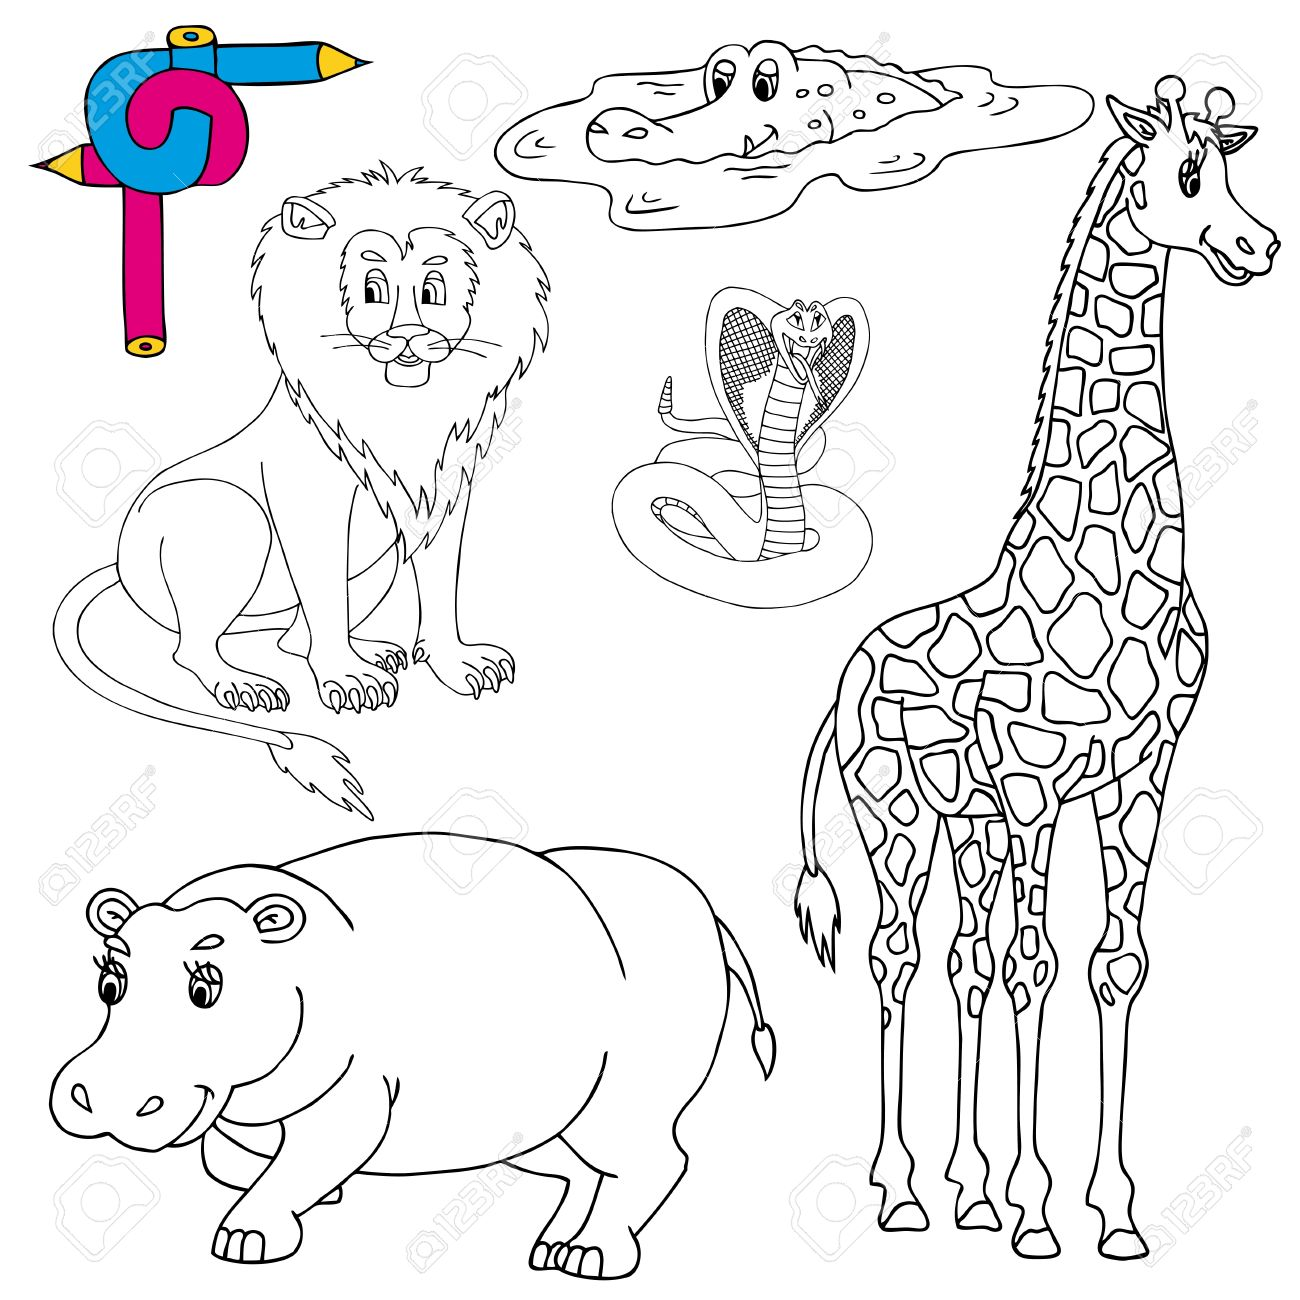 Coloring image wild animals 01 - vector illustration. Stock Vector - 21479259